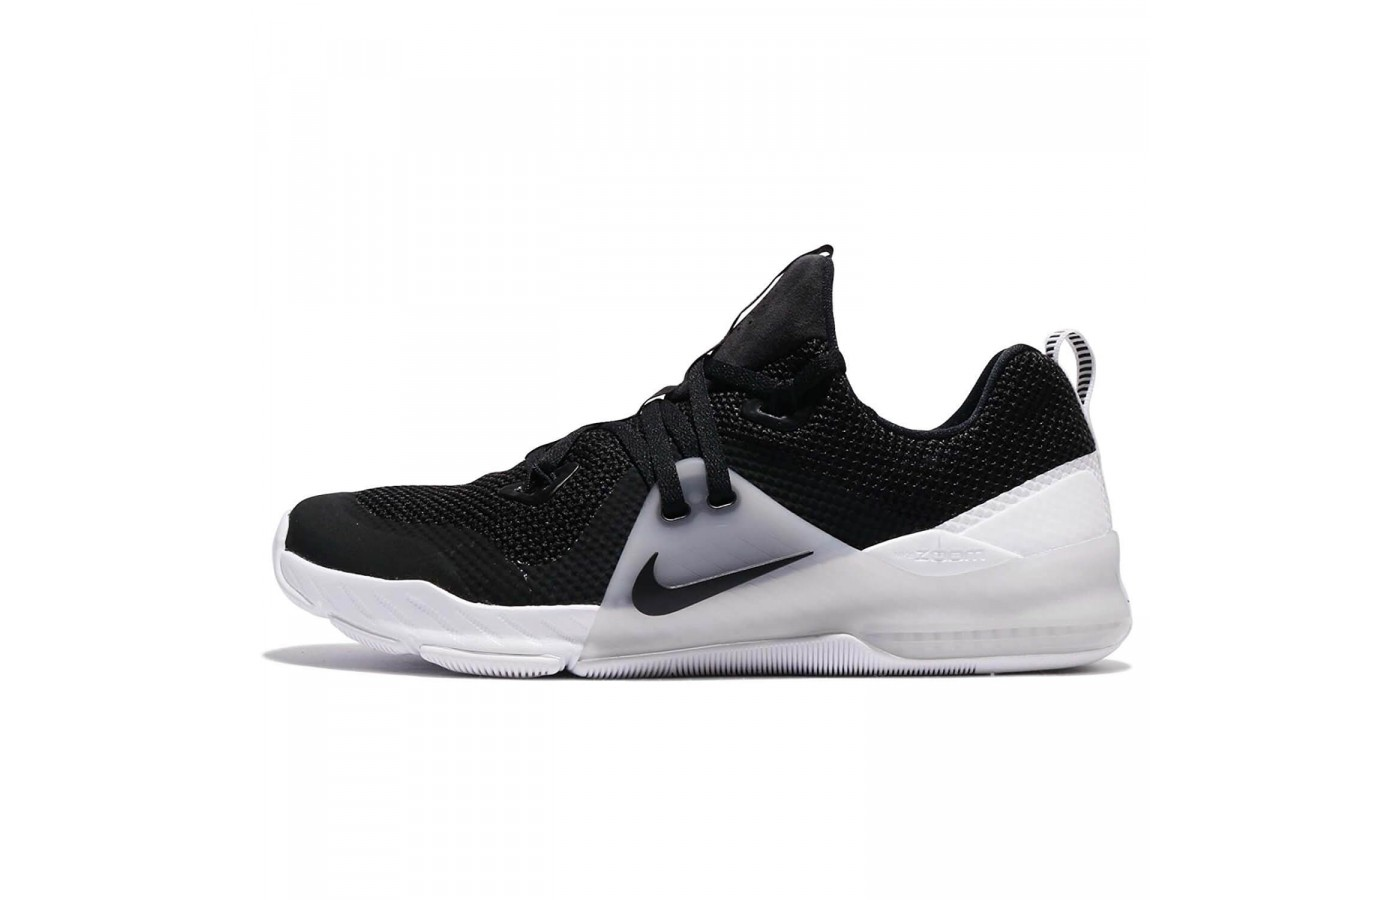 9532d4518243 Runners love the traditional Nike Zoom cushioning in the midsole ...